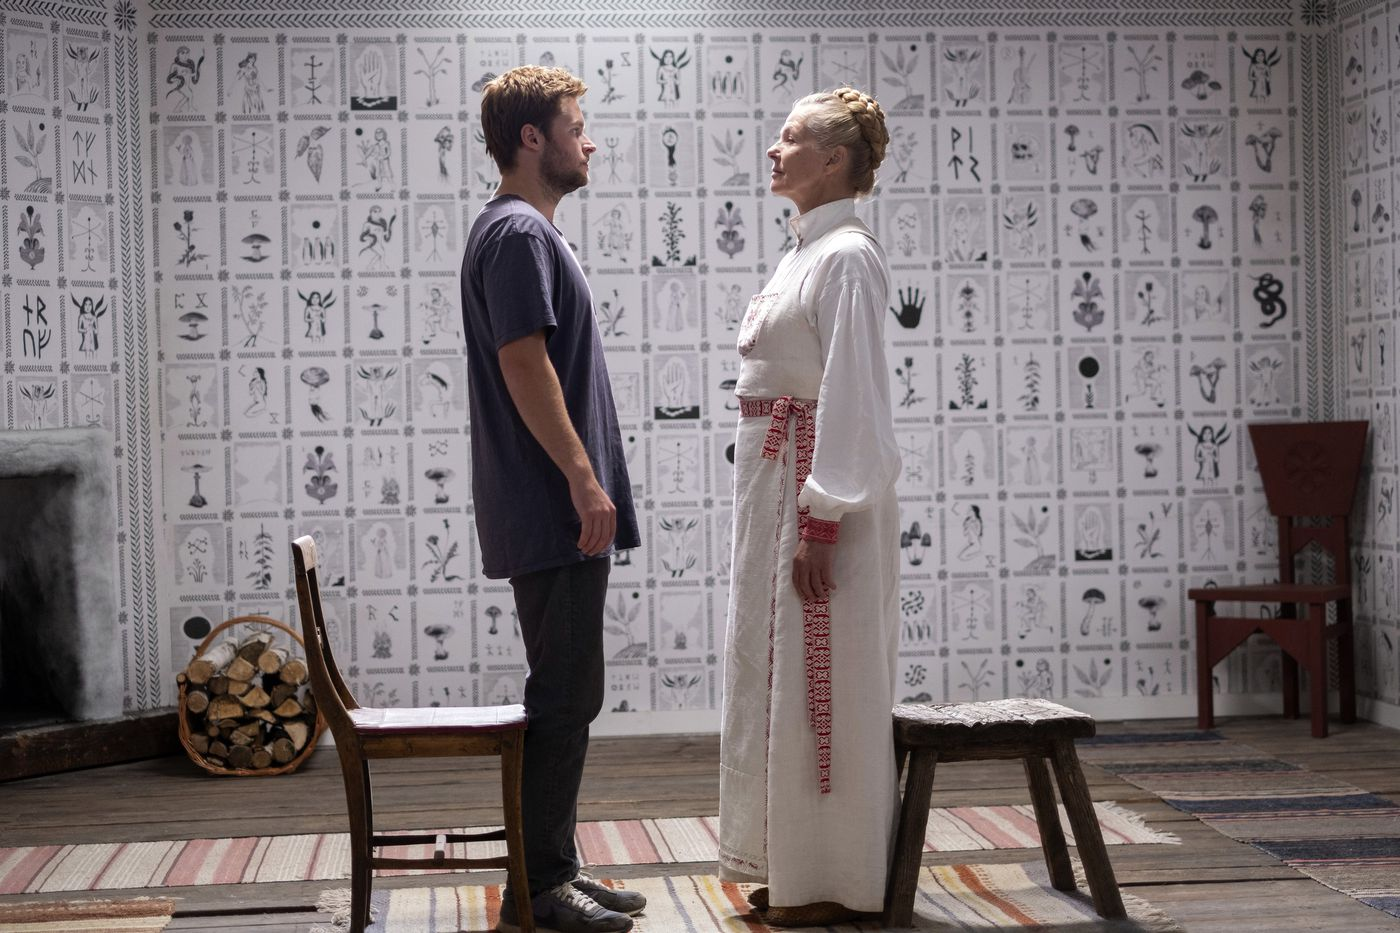 Midsommar: the movie's twisted ending, explained (spoiler